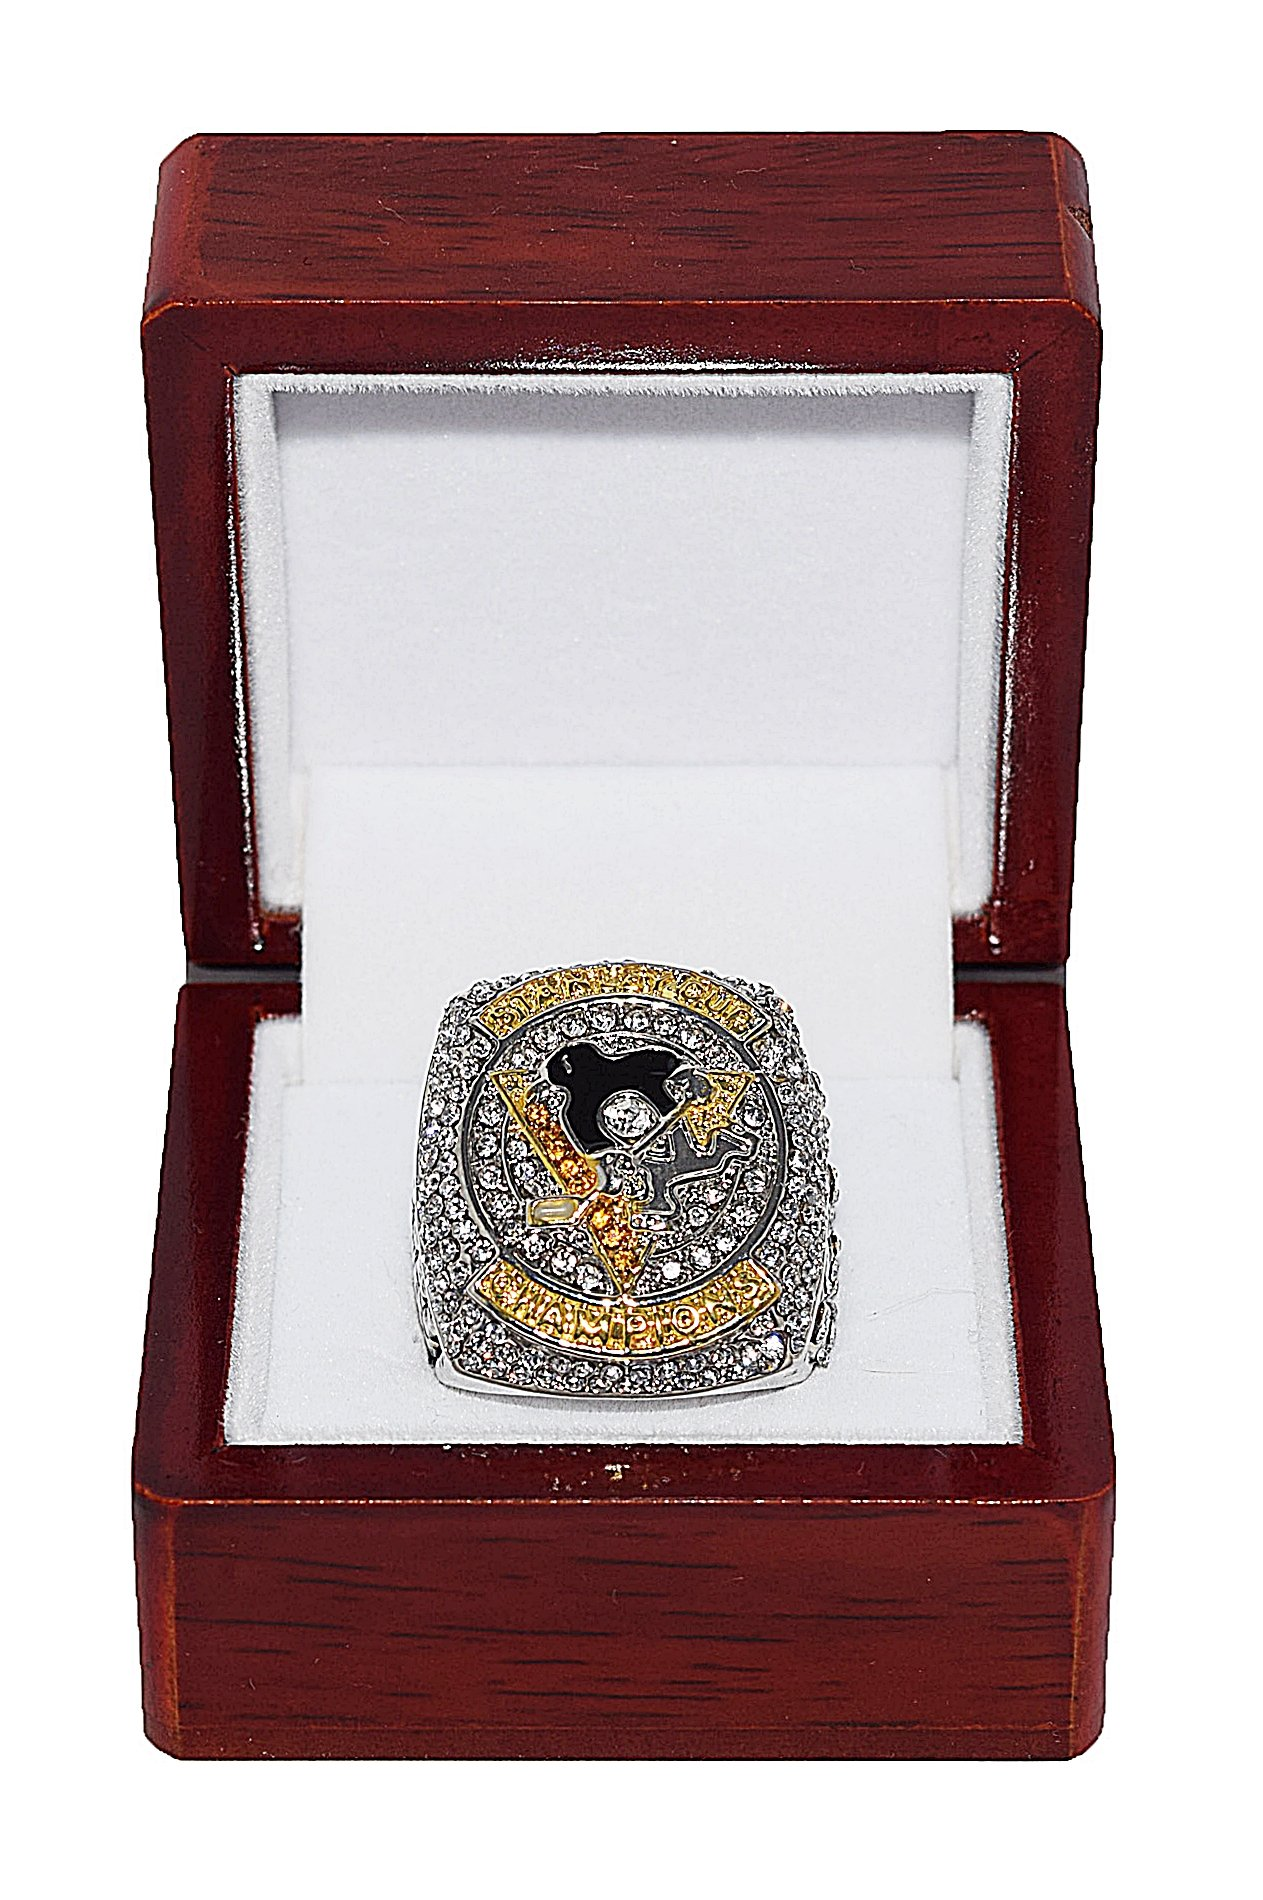 PITTSBURGH PENGUINS (Sidney Crosby) 2016 STANLEY CUP FINALS WORLD CHAMPIONS (4X Champs) Rare & Collectible High Quality Replica NHL Hockey Gold Championship Ring with Cherrywood Display Box